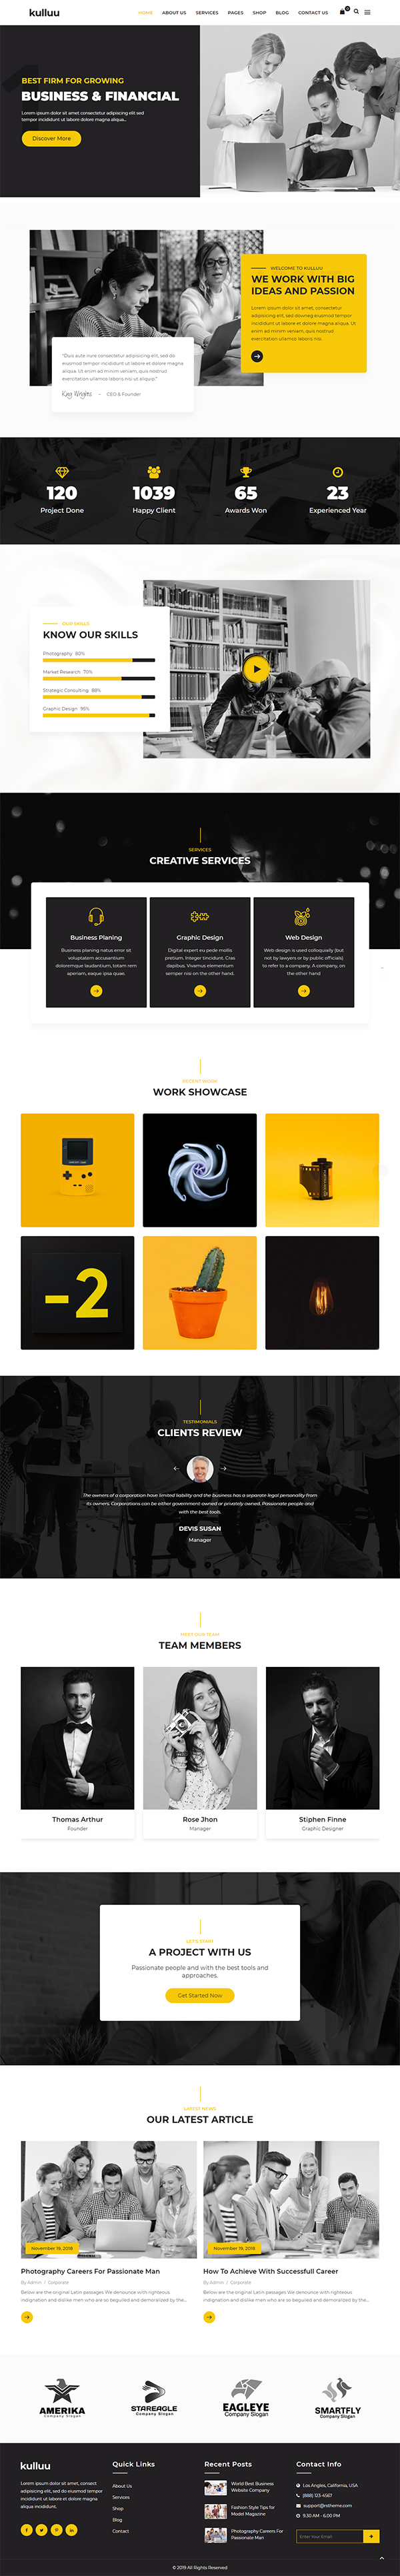 Kulluu - Creative Agency WordPress Theme